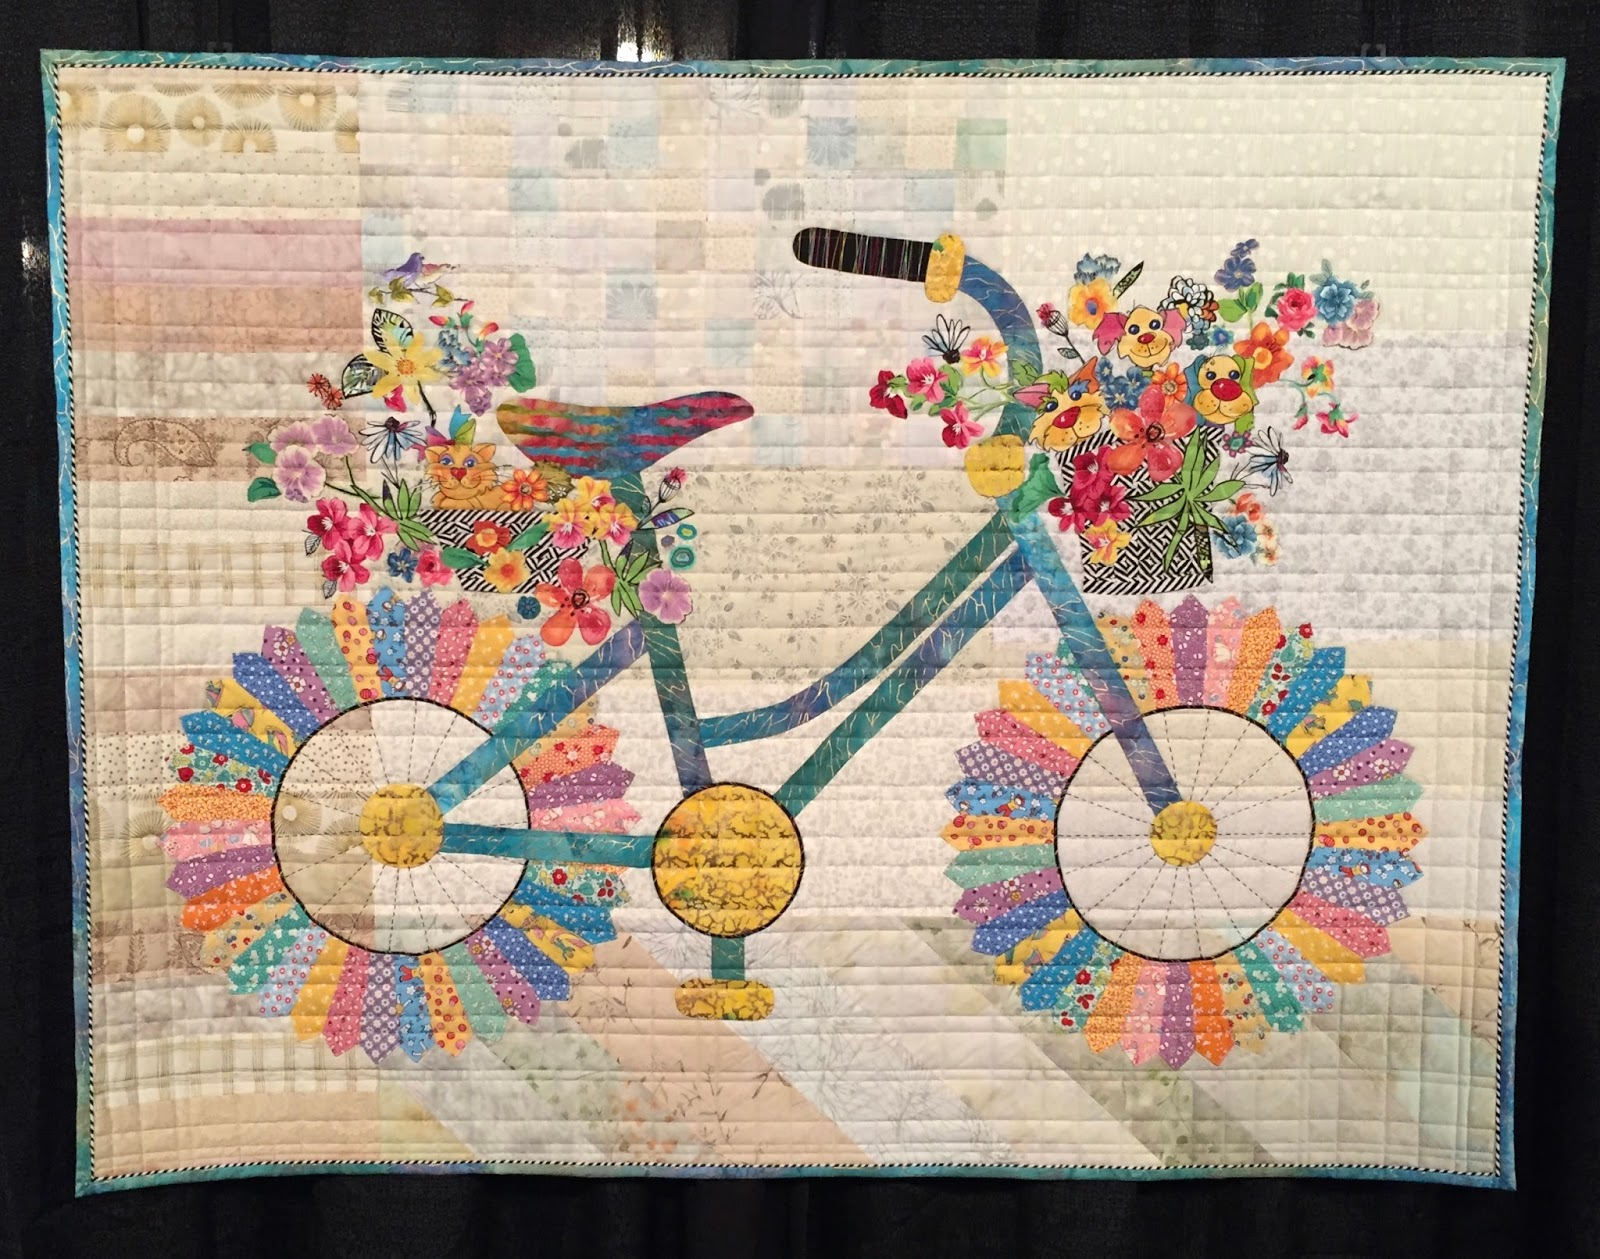 Sew Fun 2 Quilt: More Beautiful Quilts